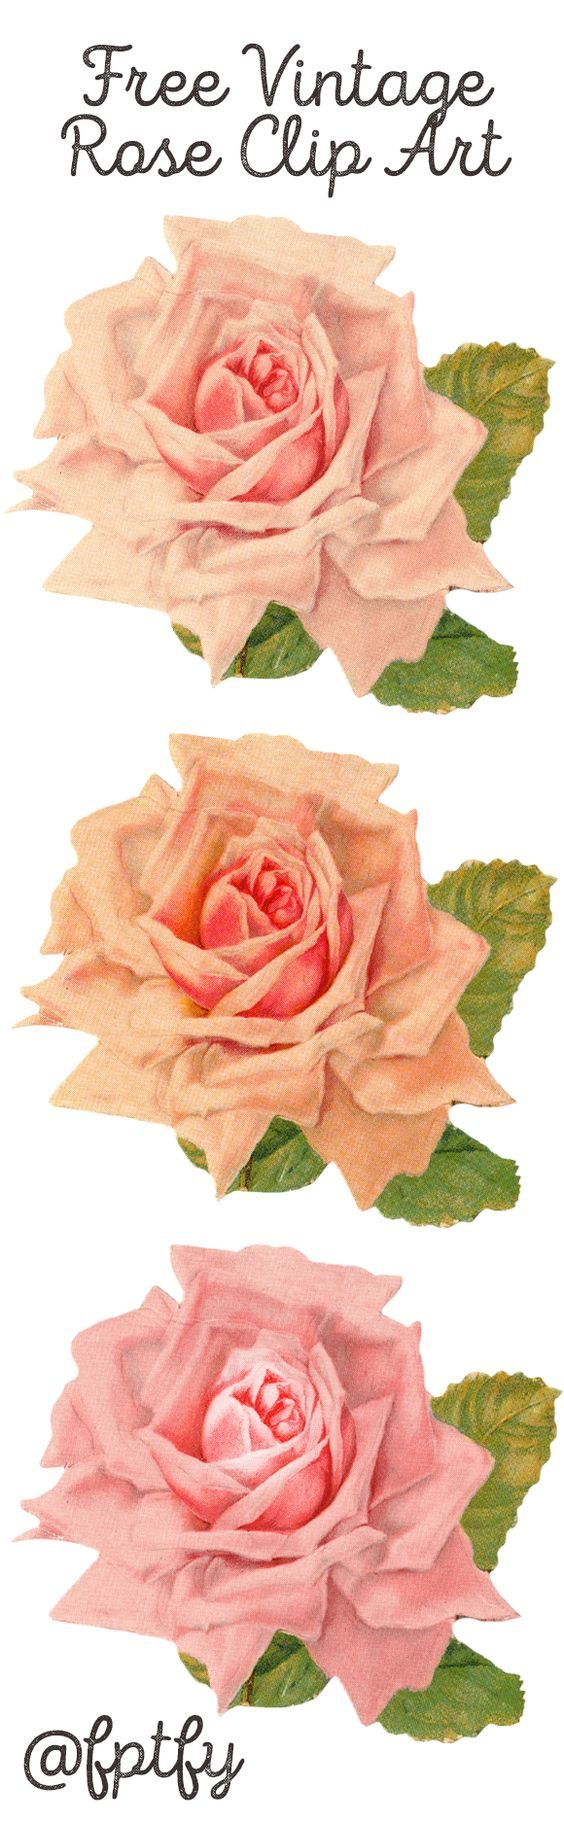 Free Beautiful Vintage Rose Clip Art available for personal and commercial use! Download today and other amazing images graphics!: